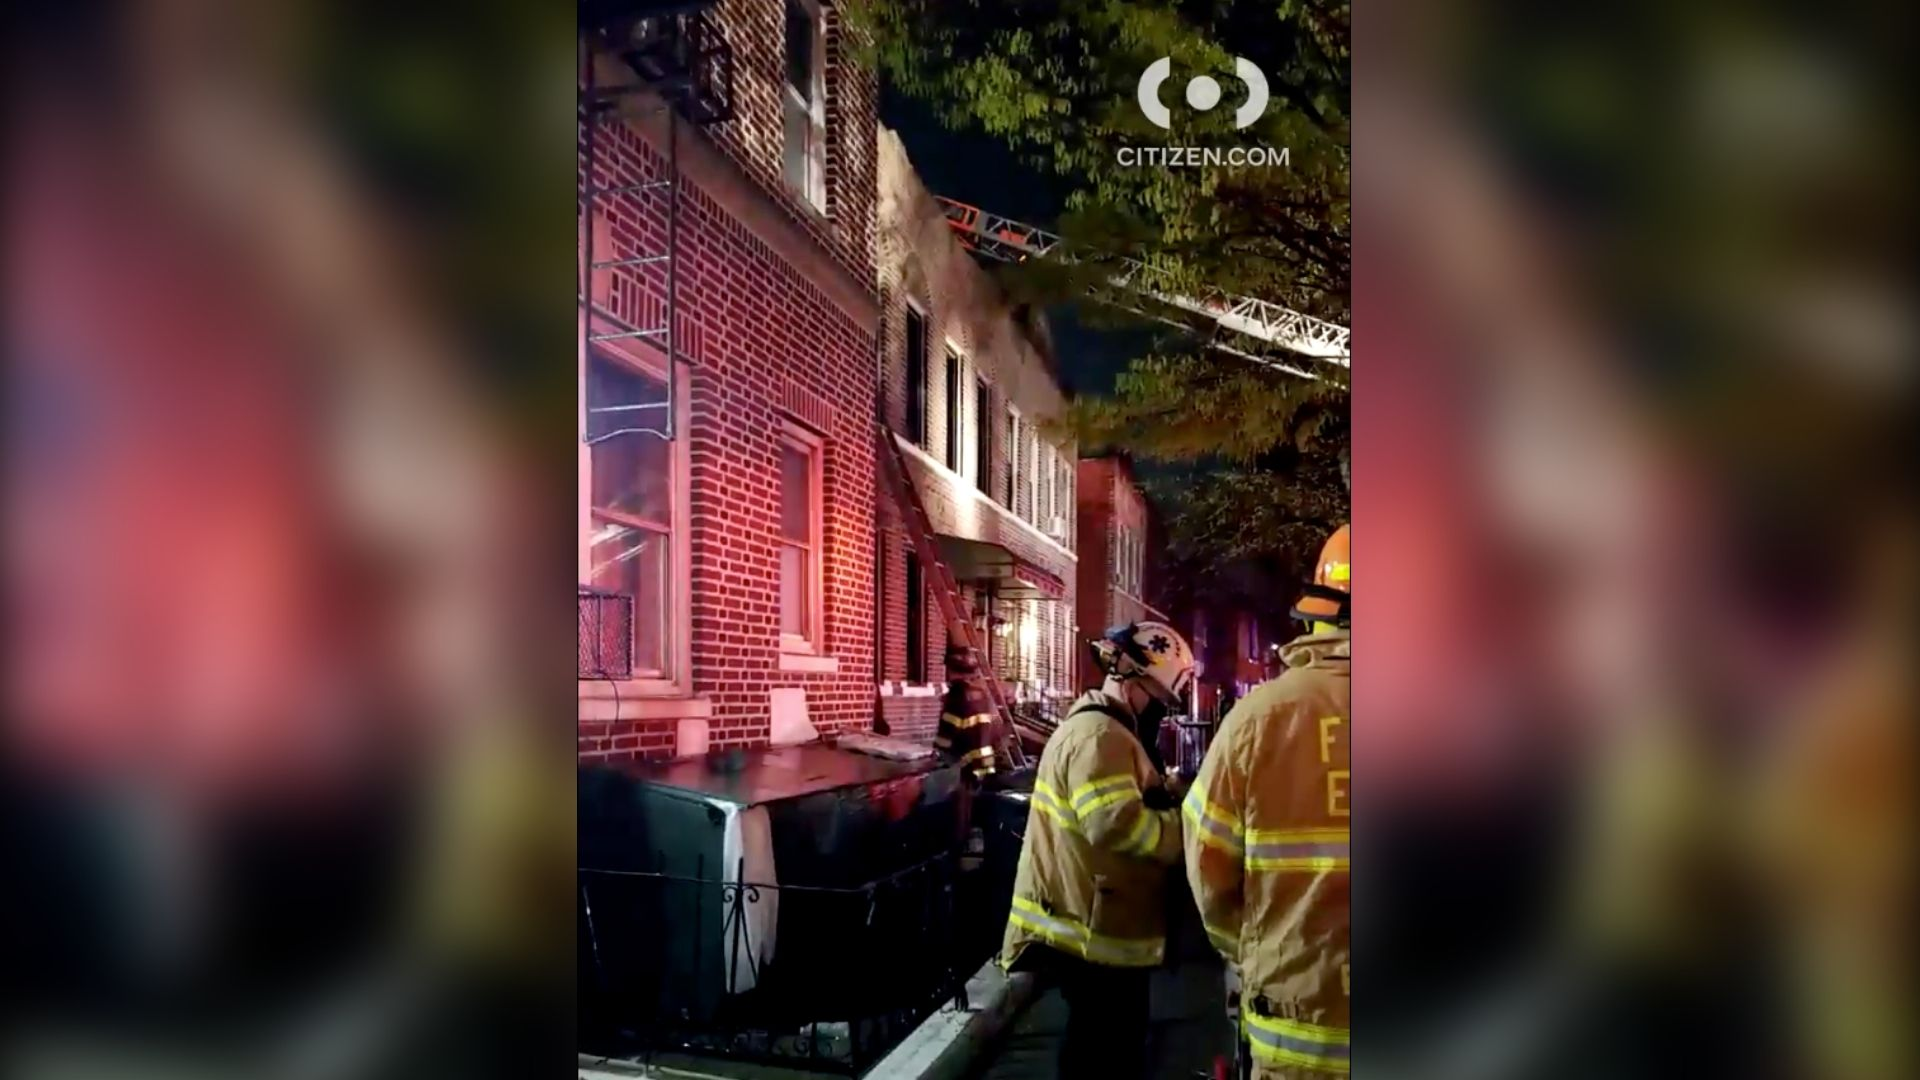 Firefighters operating at an apartment fire on Schenectady Avenue in the East Flatbush section of Brooklyn early Monday, April 12, 2021 that left three people hurt, according to the FDNY. (Citizen App)